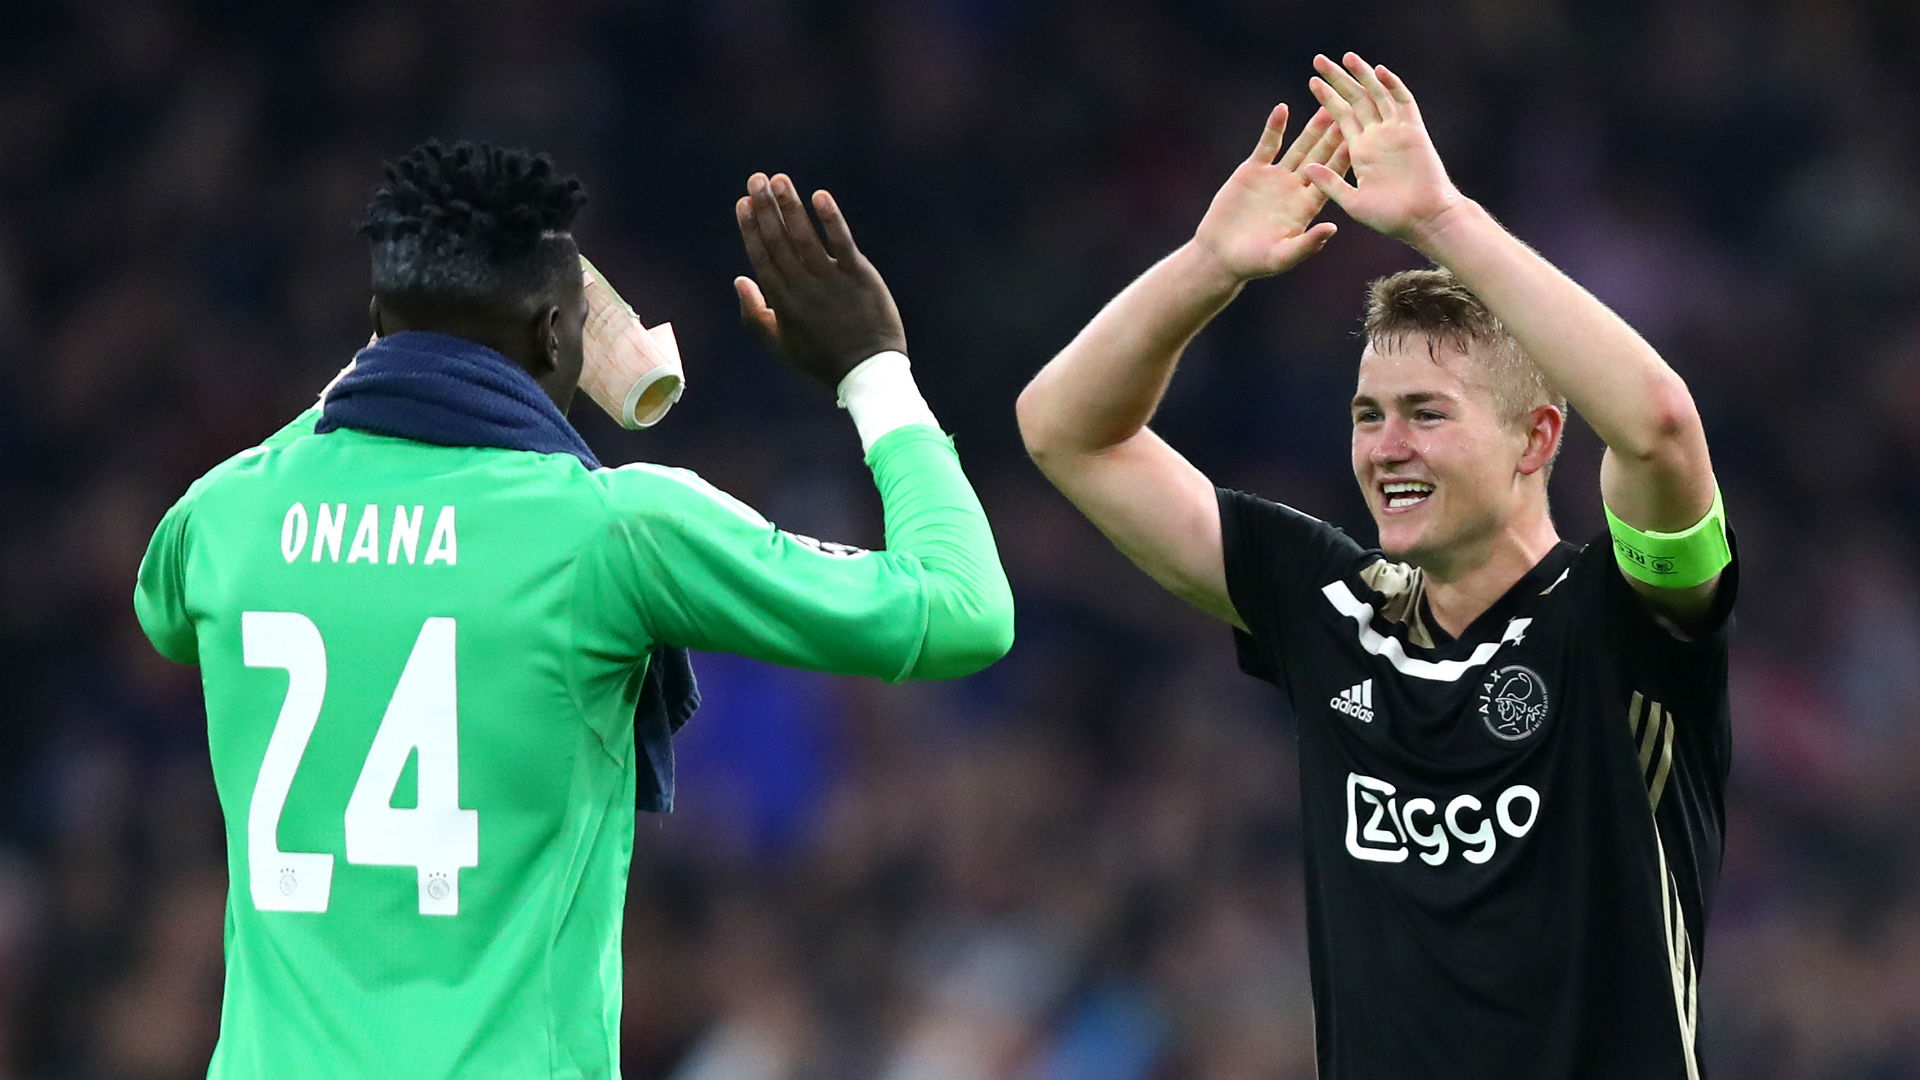 Talent spotters for Europe's current elite will have their gaze fixed on an Ajax vintage keen to rekindle the glory days versus Real Madrid.